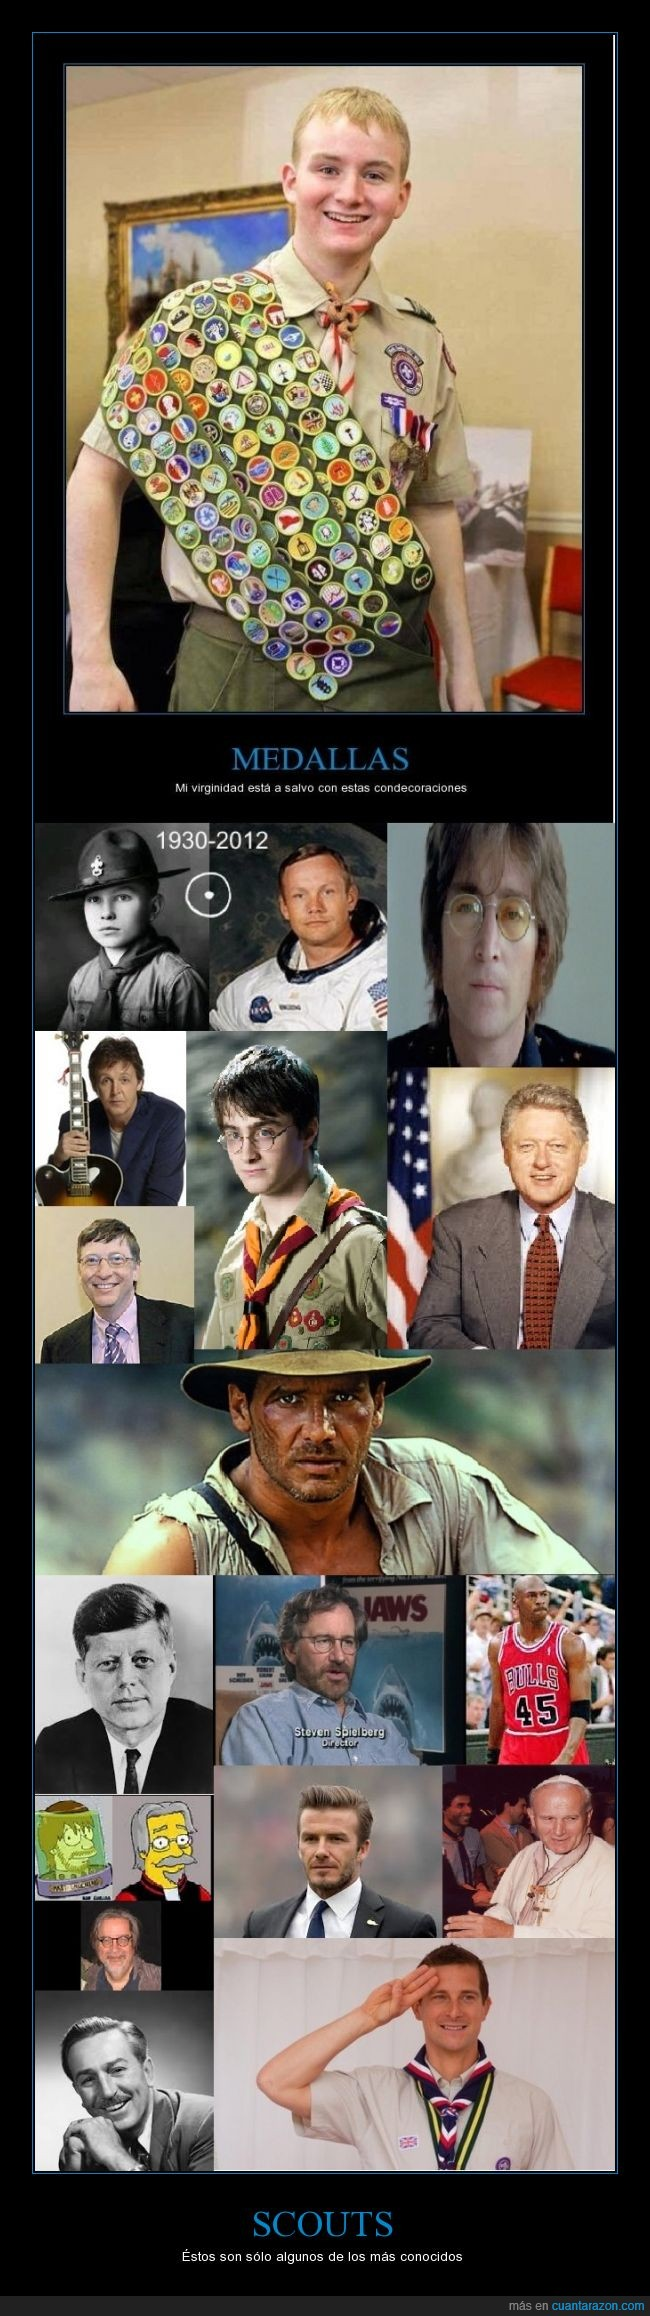 bear grylls,daniel radcliffe,david beckham,famoso,harrison ford,paul mccartney,scouts,walt disney